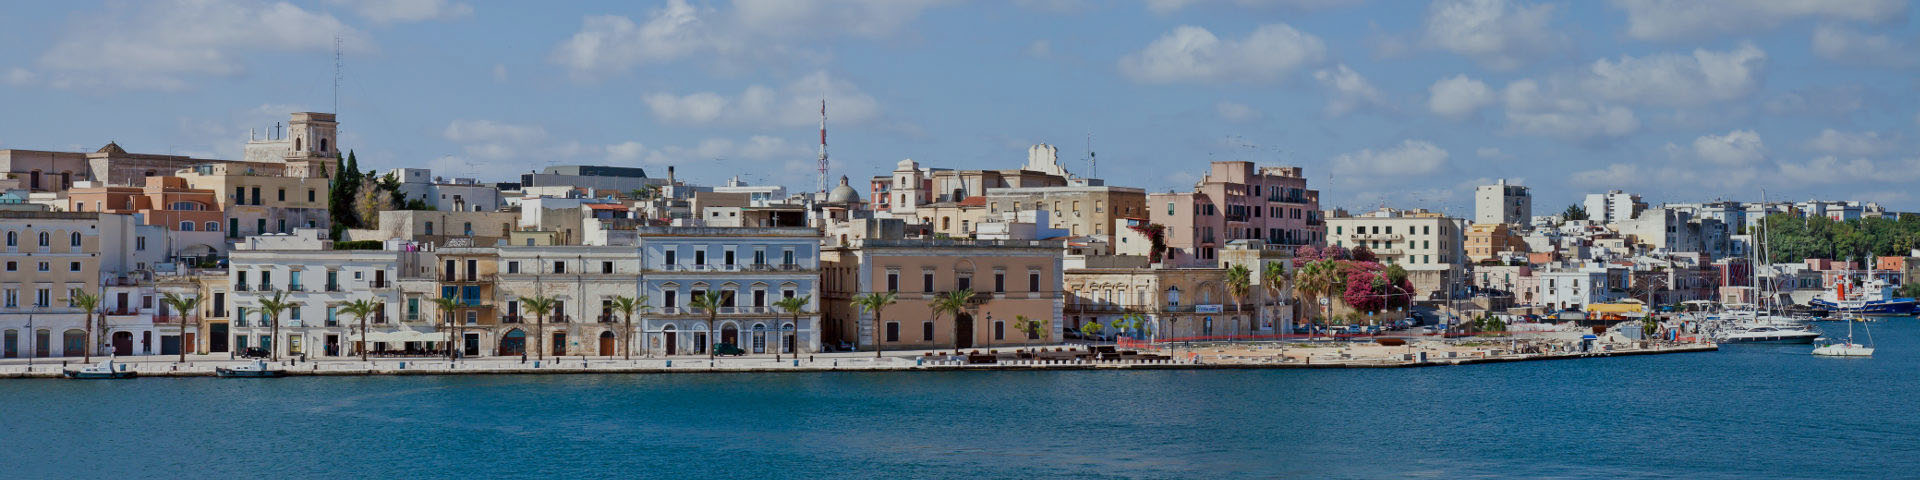 Hero brindisi skyline view edit